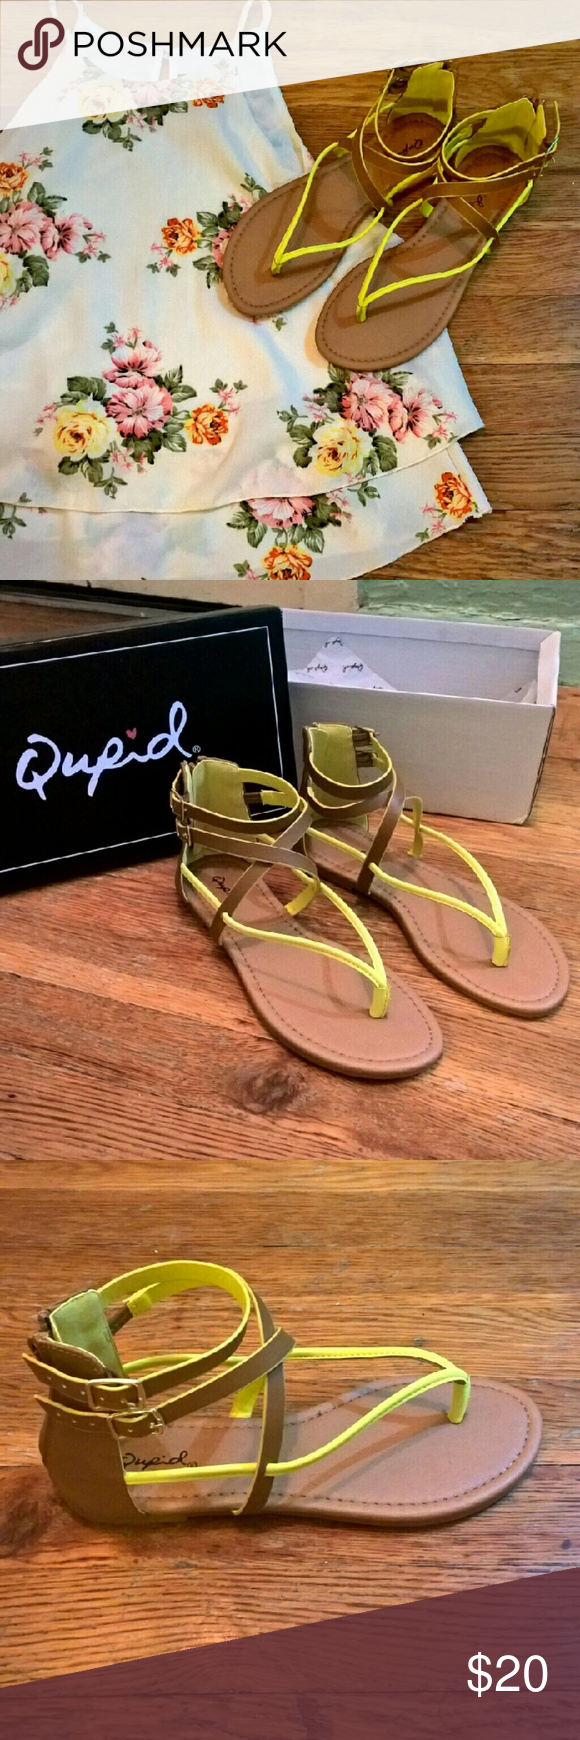 Strappy Sandals Sandals by Qupid, Brand new. Zip up from back. Never been worn. True to size  Size:5 Qupid Shoes Sandals